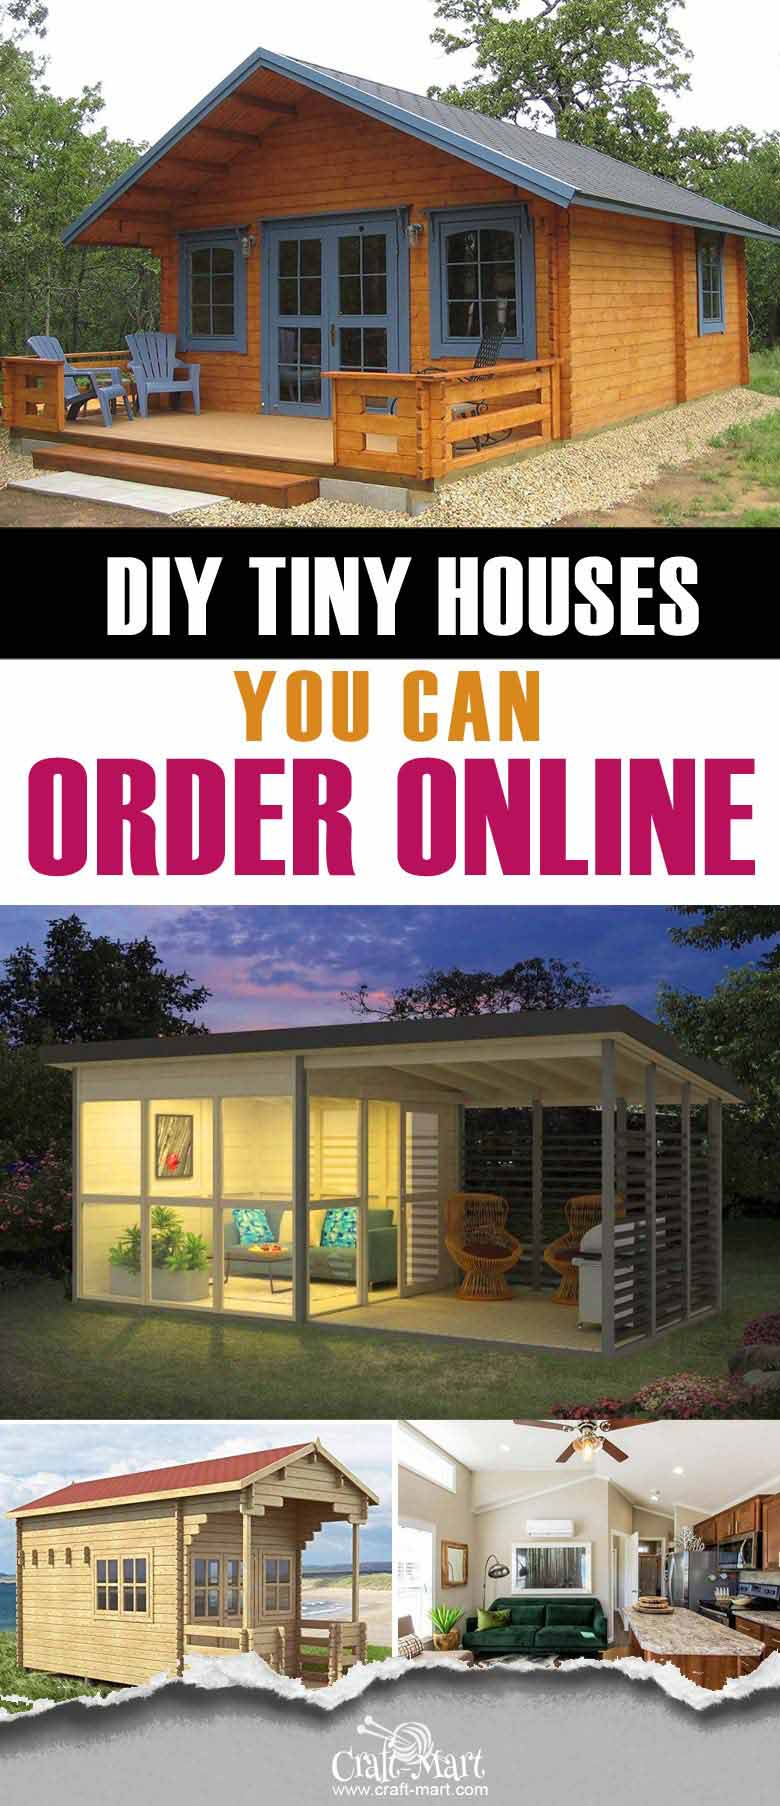 Prefab Tiny Houses You Can Order Online Right Now Craft Mart